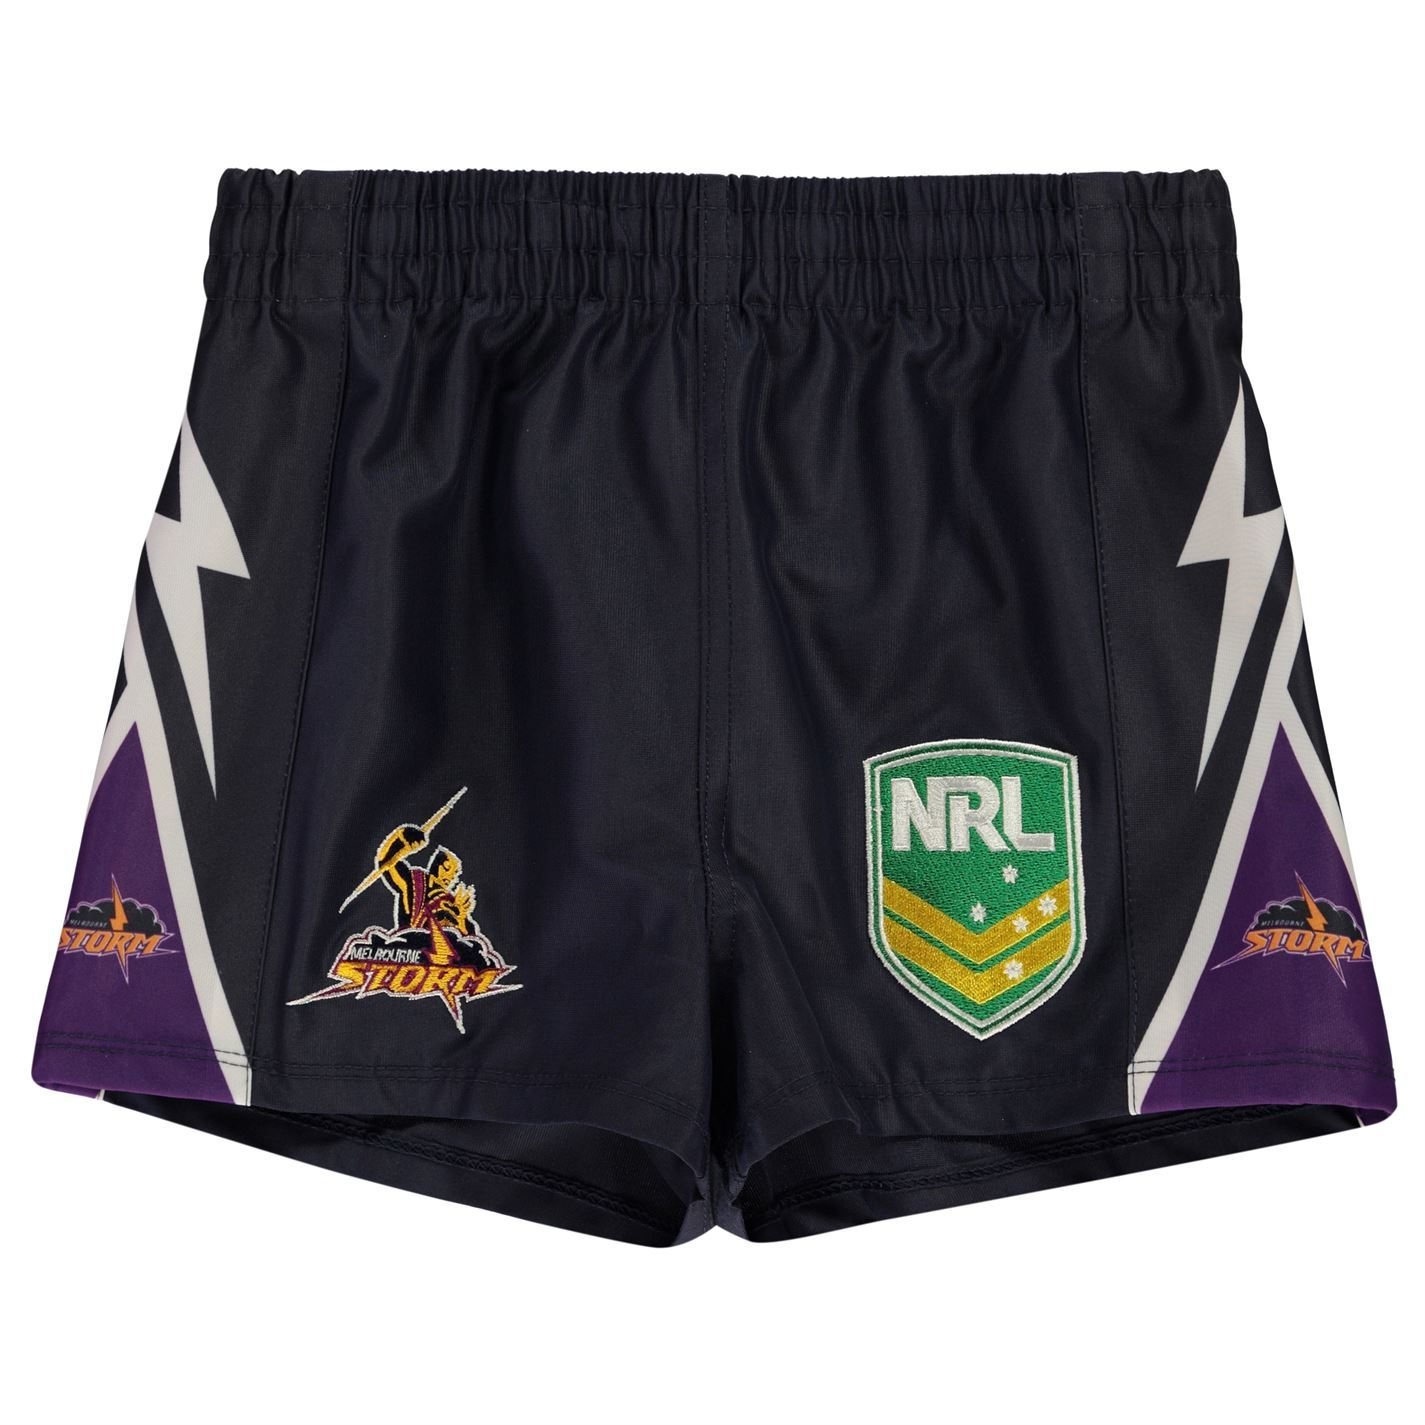 NRL-Supporter-Shorts-Juniors-Rugby-League-Storm-Bulldog-Sea-Eagles-Eels-Roosters thumbnail 8